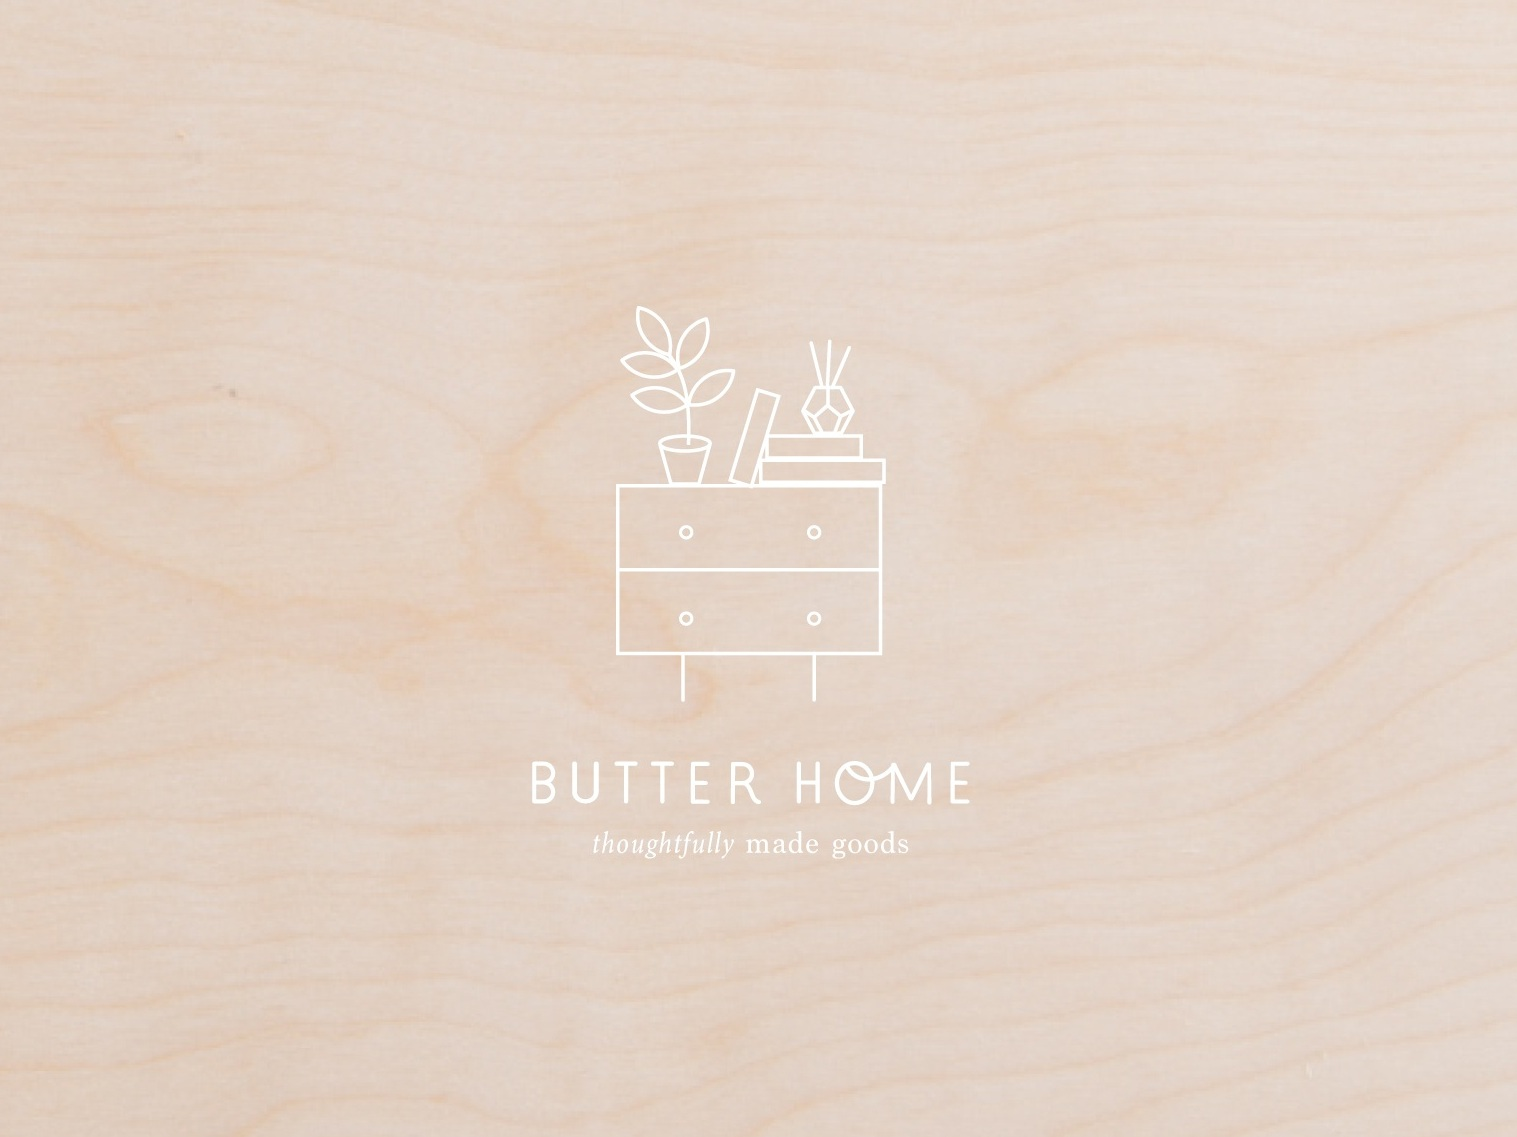 butter home seattle logo design